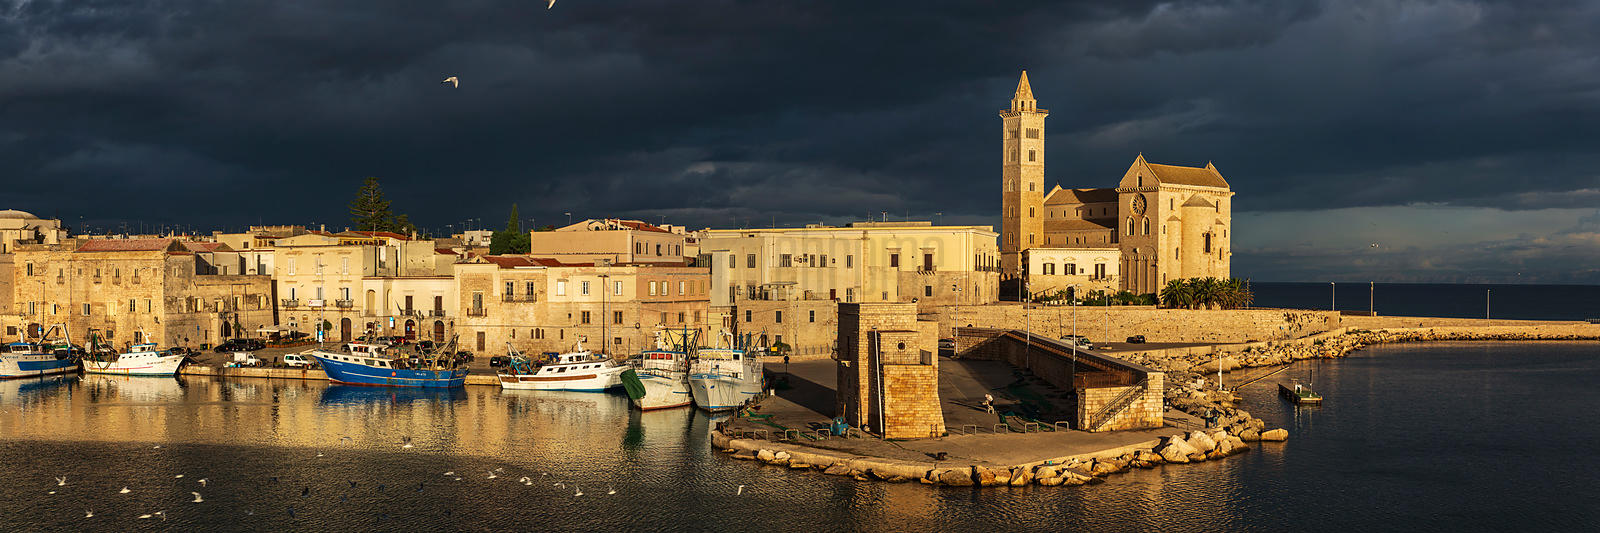 The Harbour and the Cathedral at Trani at Sunrise